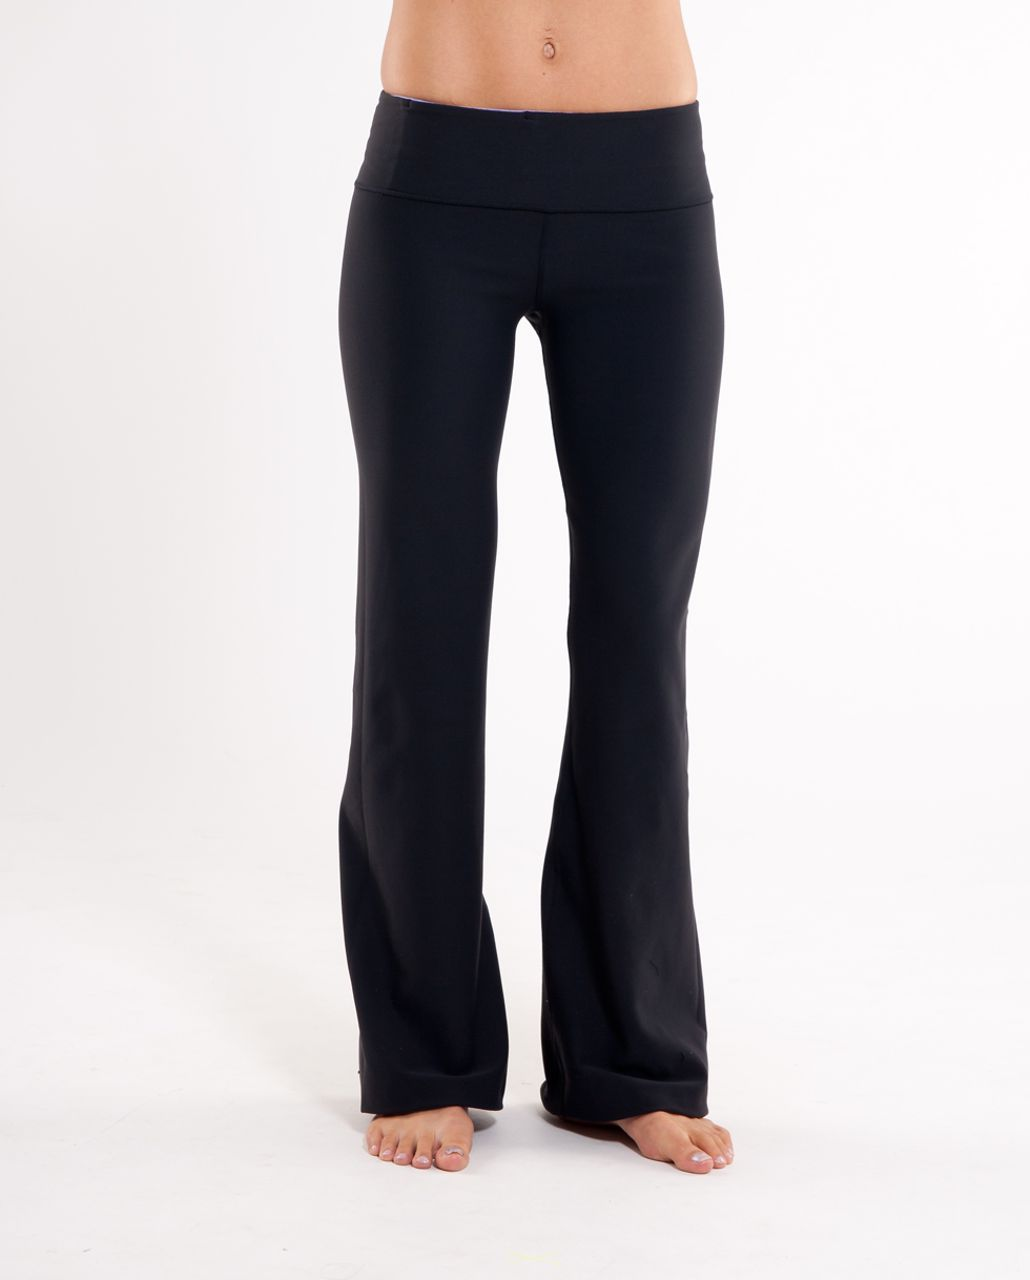 Lululemon Groove Pant (Regular) - Black /  Heathered Grapeseed /  Grapeseed